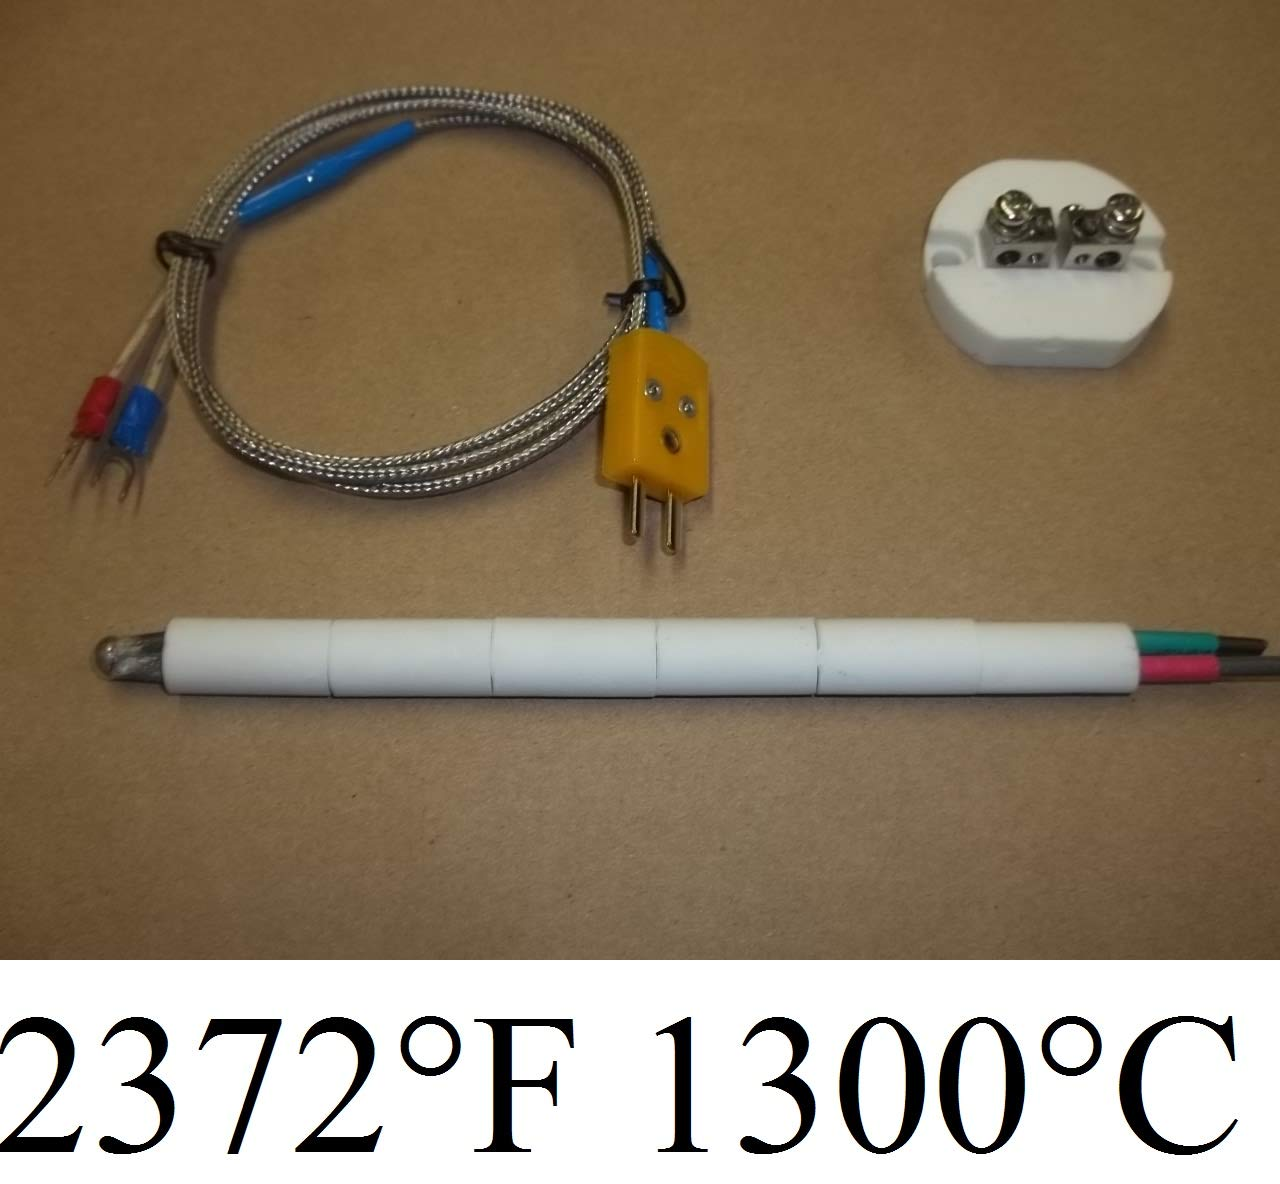 Thermomart Plug /& Play PID Temperature Controller Box Kiln Probe Pottery Glass Annealing